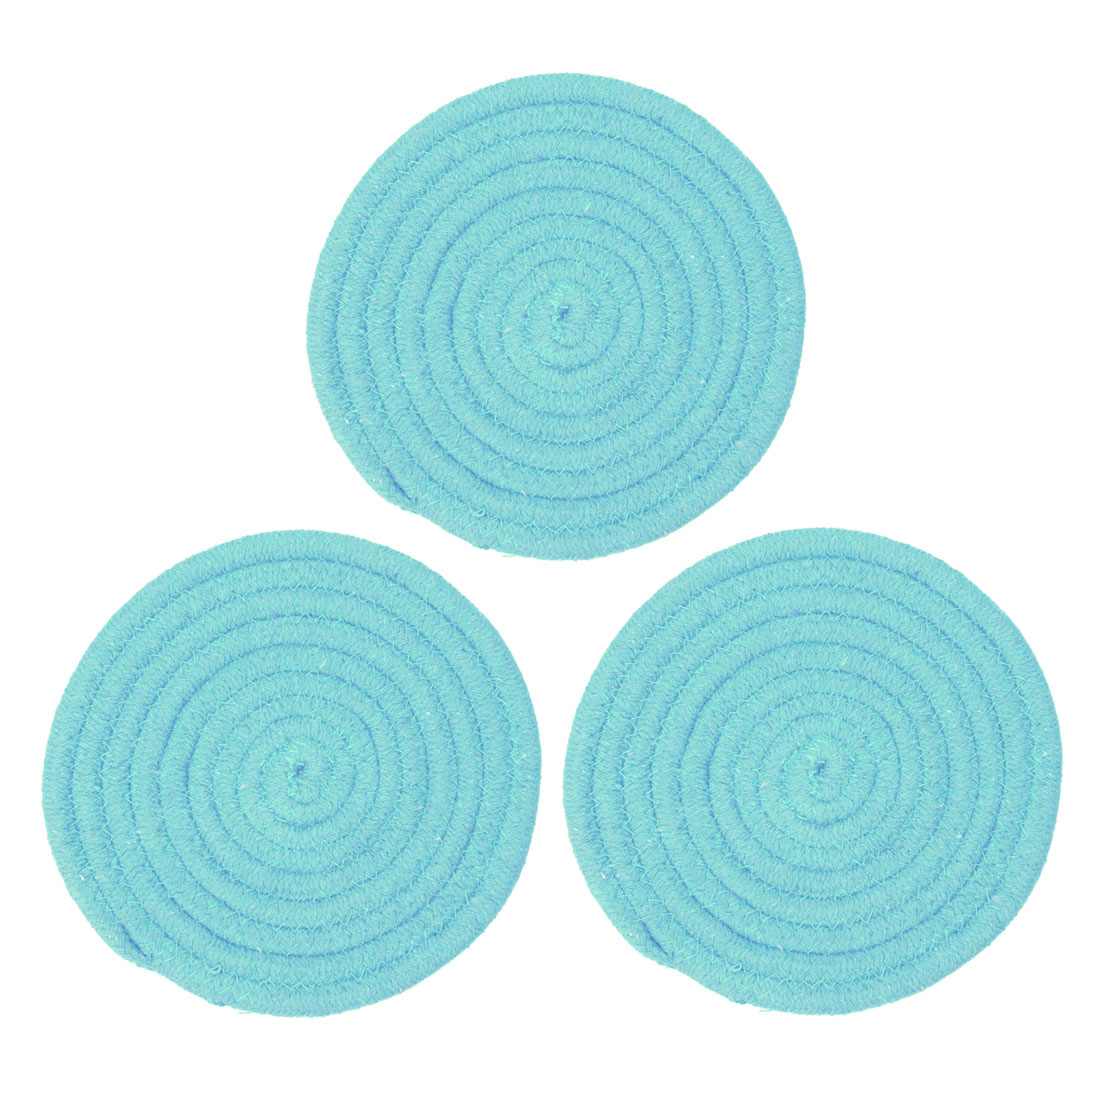 "Round Cotton Thread Weave Heat Resistant Mat 7"" Dia Placemats/Spoon Rest/Coasters Mats, Kitchen Dining Mats Pink 3pcs"